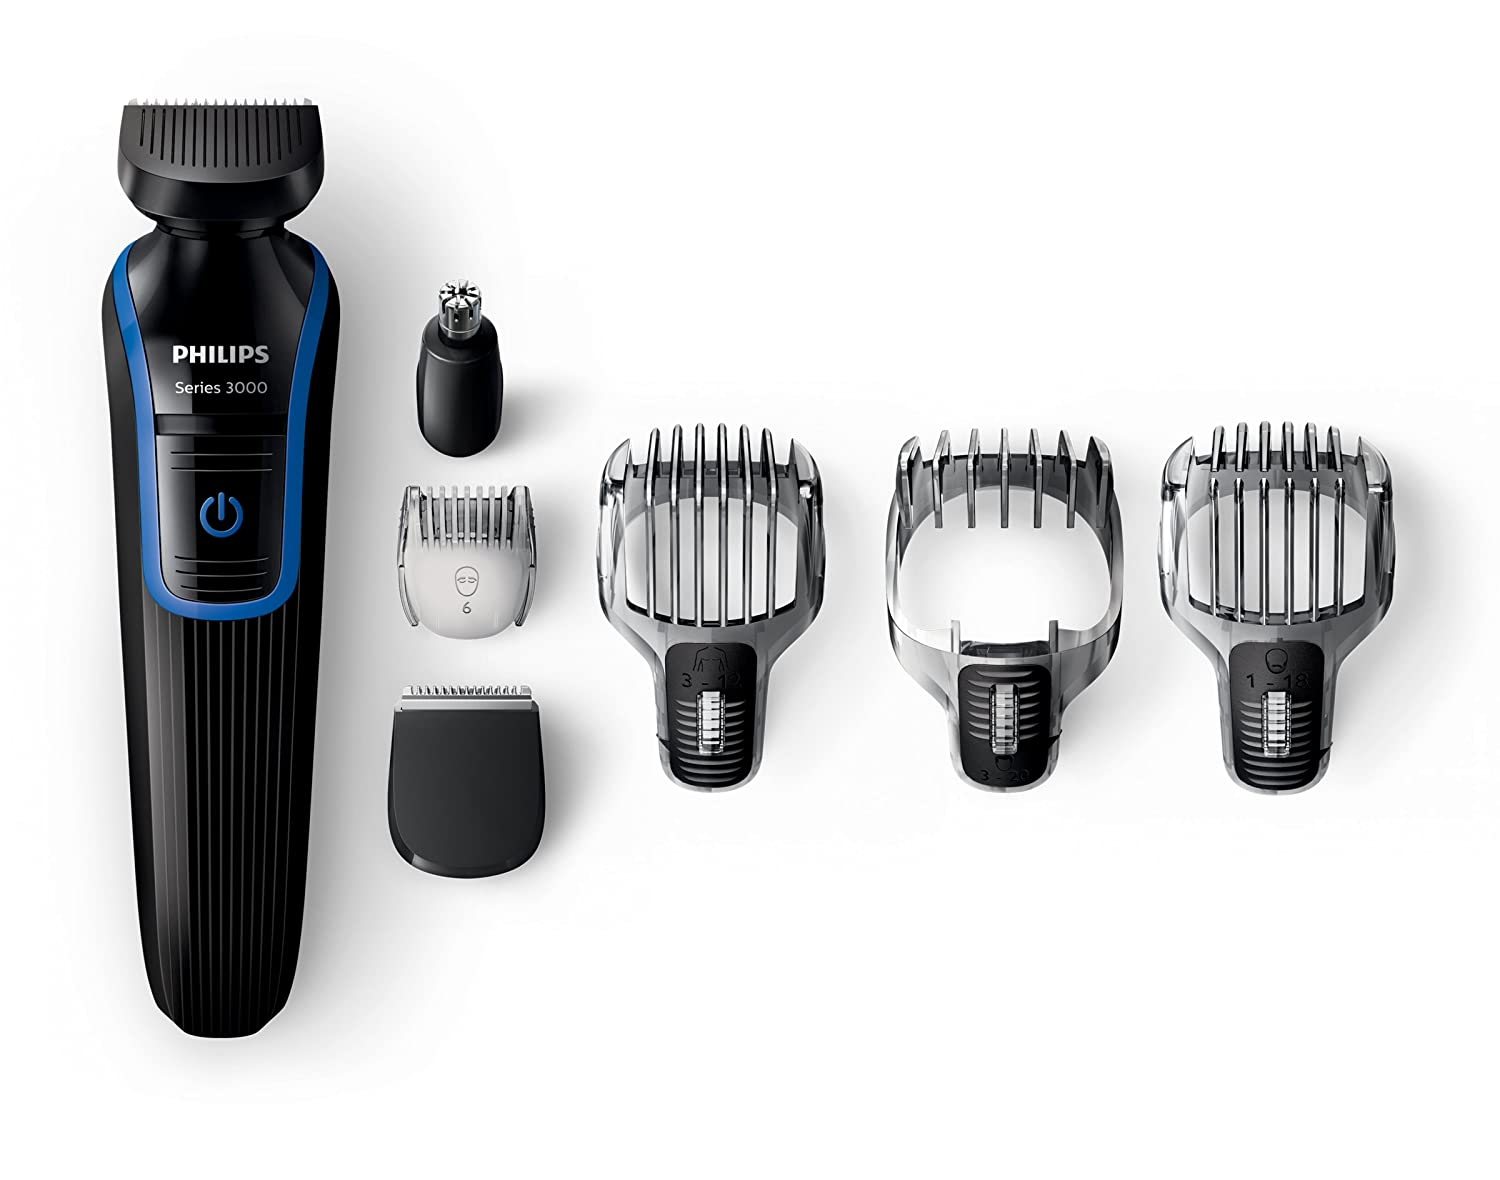 Philips QG3337/15 7 in 1 Waterproof Mens Grooming Kit UK Plug [Importación inglesa]: Amazon.es: Salud y cuidado personal